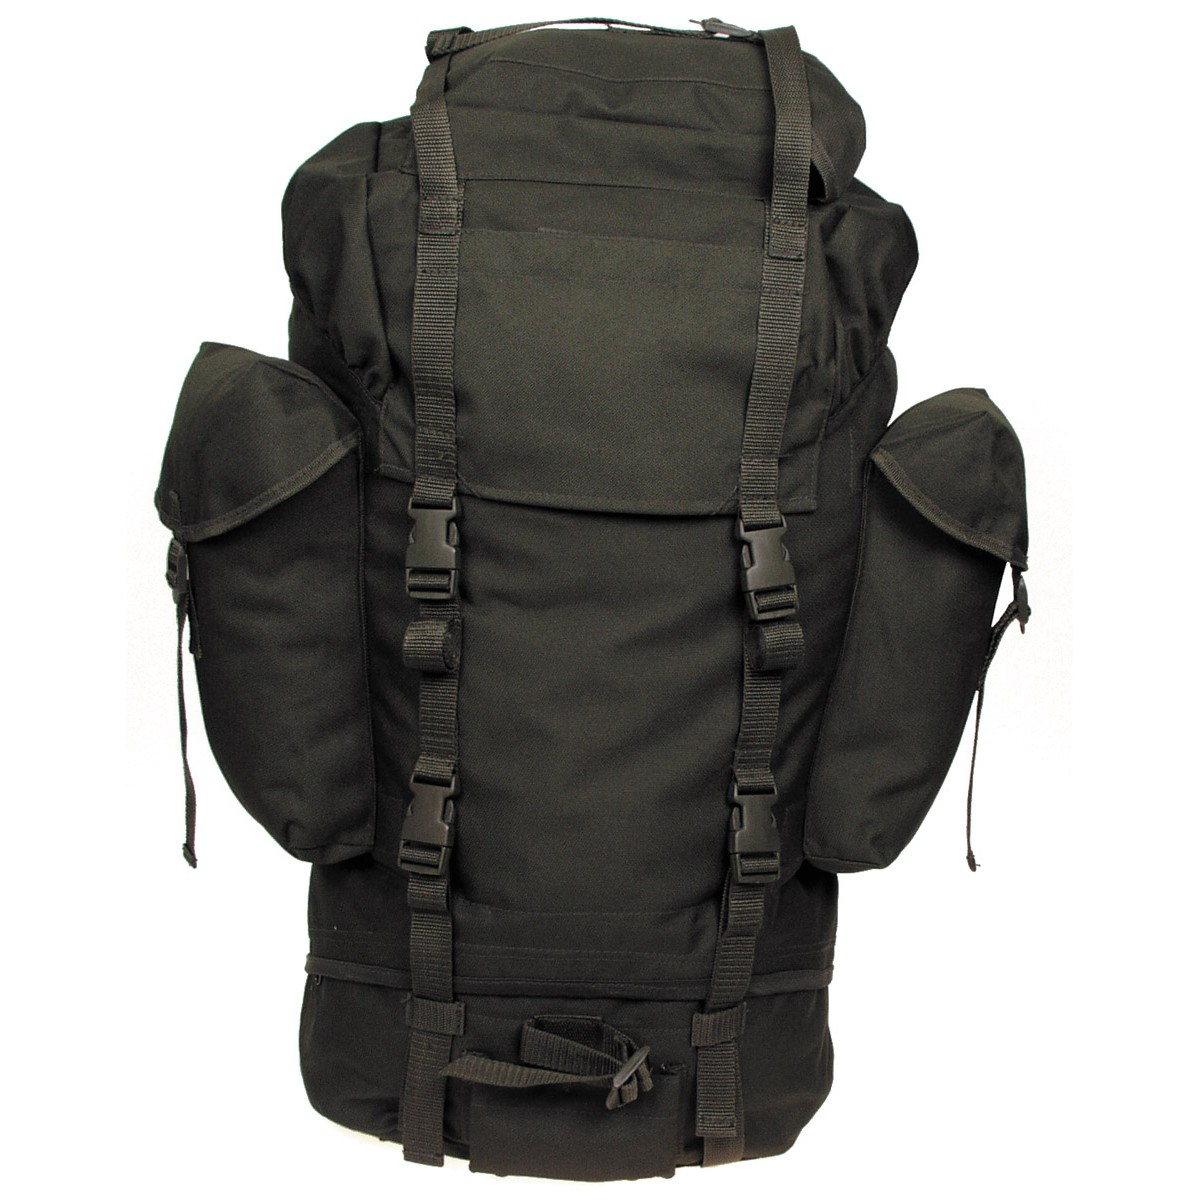 Military Patrol Expedition Backpack Large 65L - OD Green